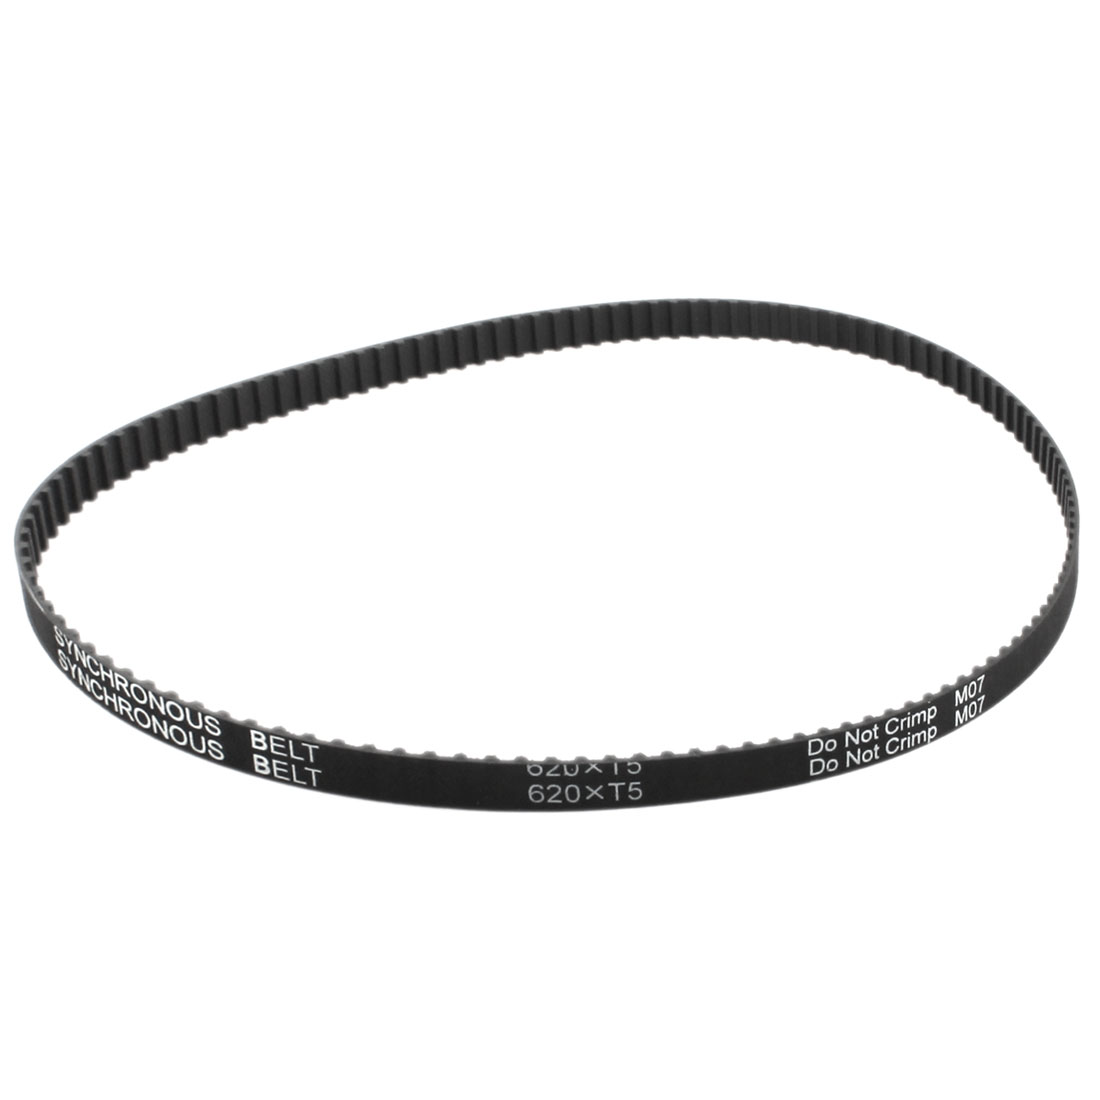 T5x620 124-Tooth 10mm Width Single Side Black Rubber Groove Industrial CNC Machine 3D Printer Synchronous Timing Belt 620mm Girth